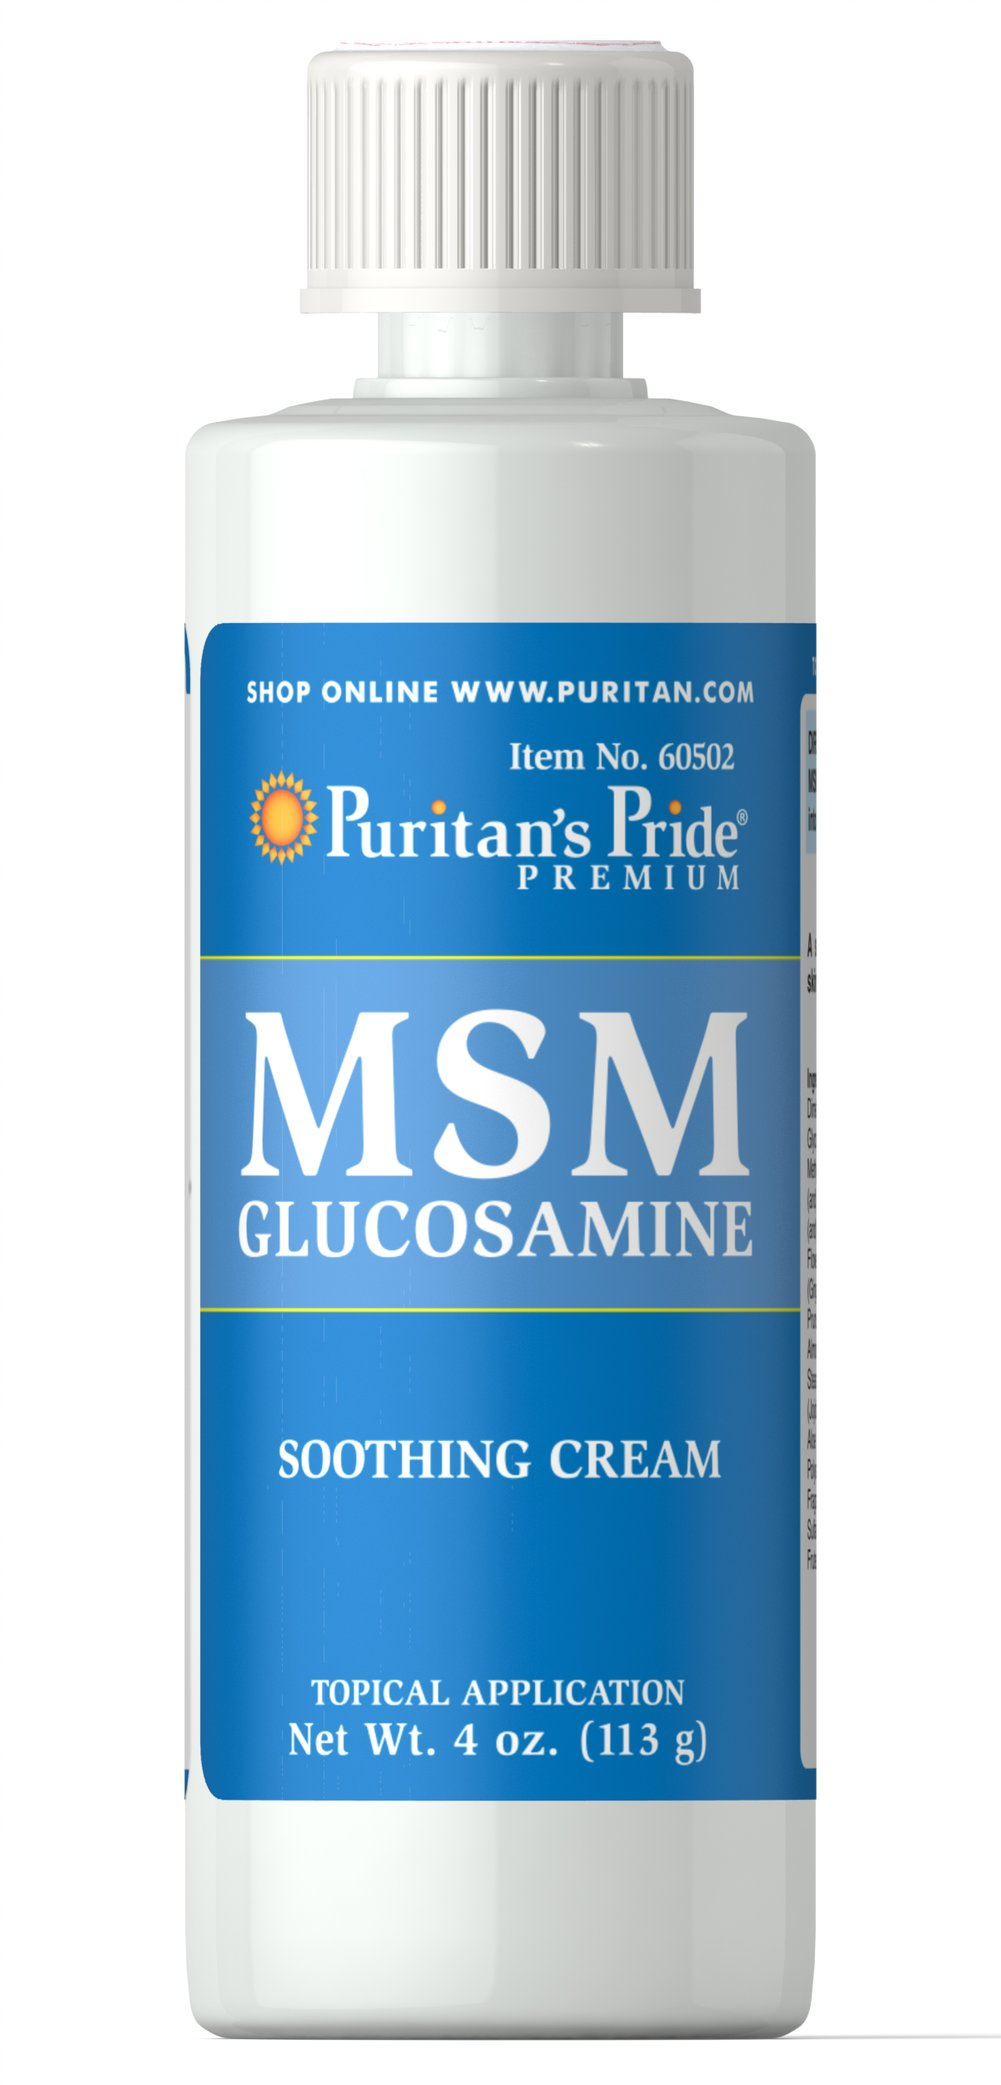 MSM Glucosamine Cream <p>Gently massage <b>MSM with Glucosamine Cream</b> into the skin as required, or follow the advice of your health care professional.</p> 4 oz Cream  $14.39